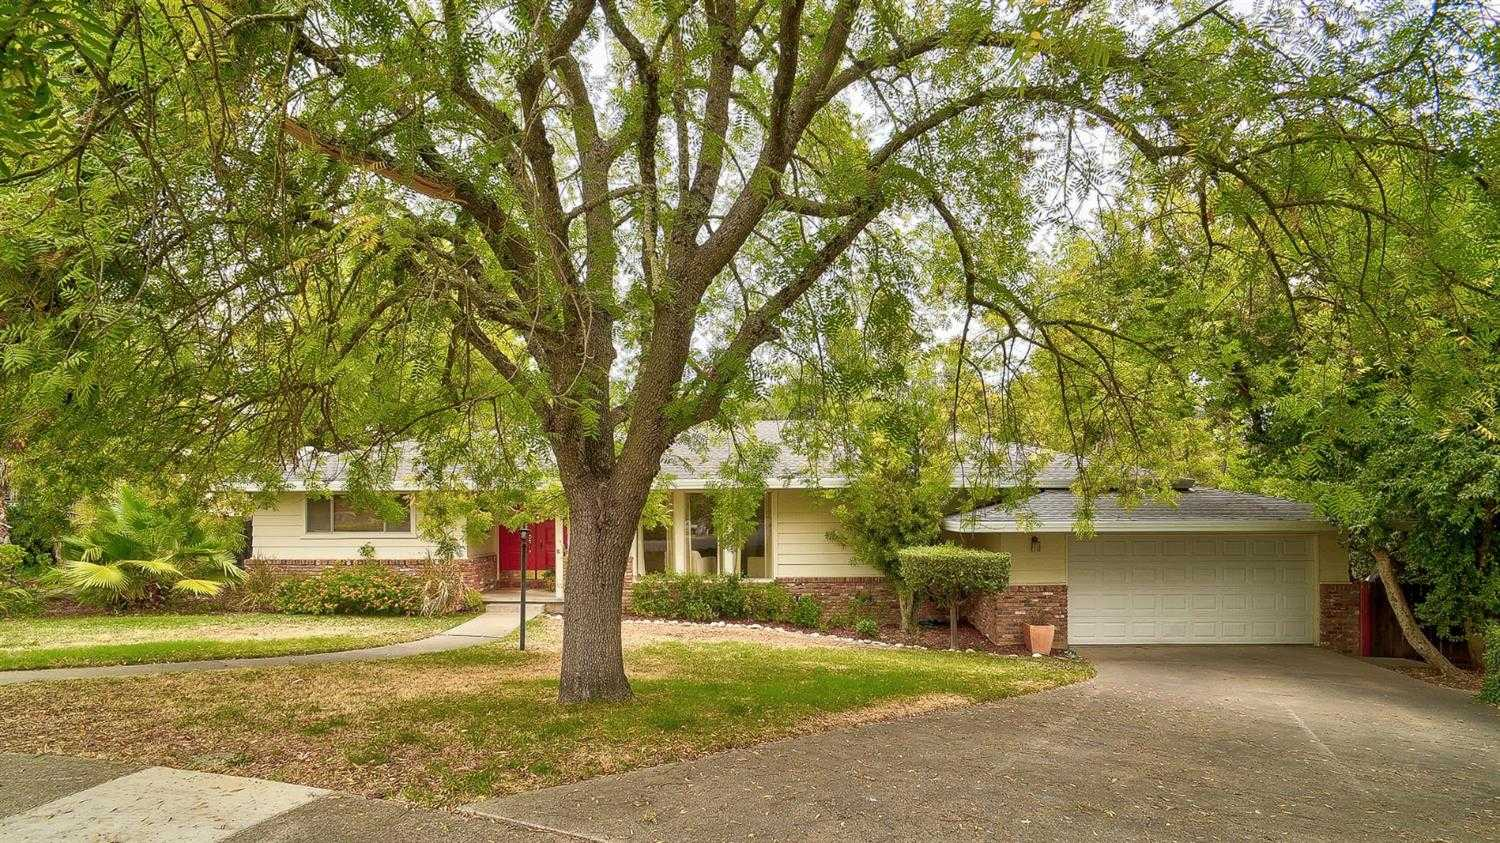 $635,000 - 4Br/2Ba -  for Sale in Mira Loma Palms, Carmichael